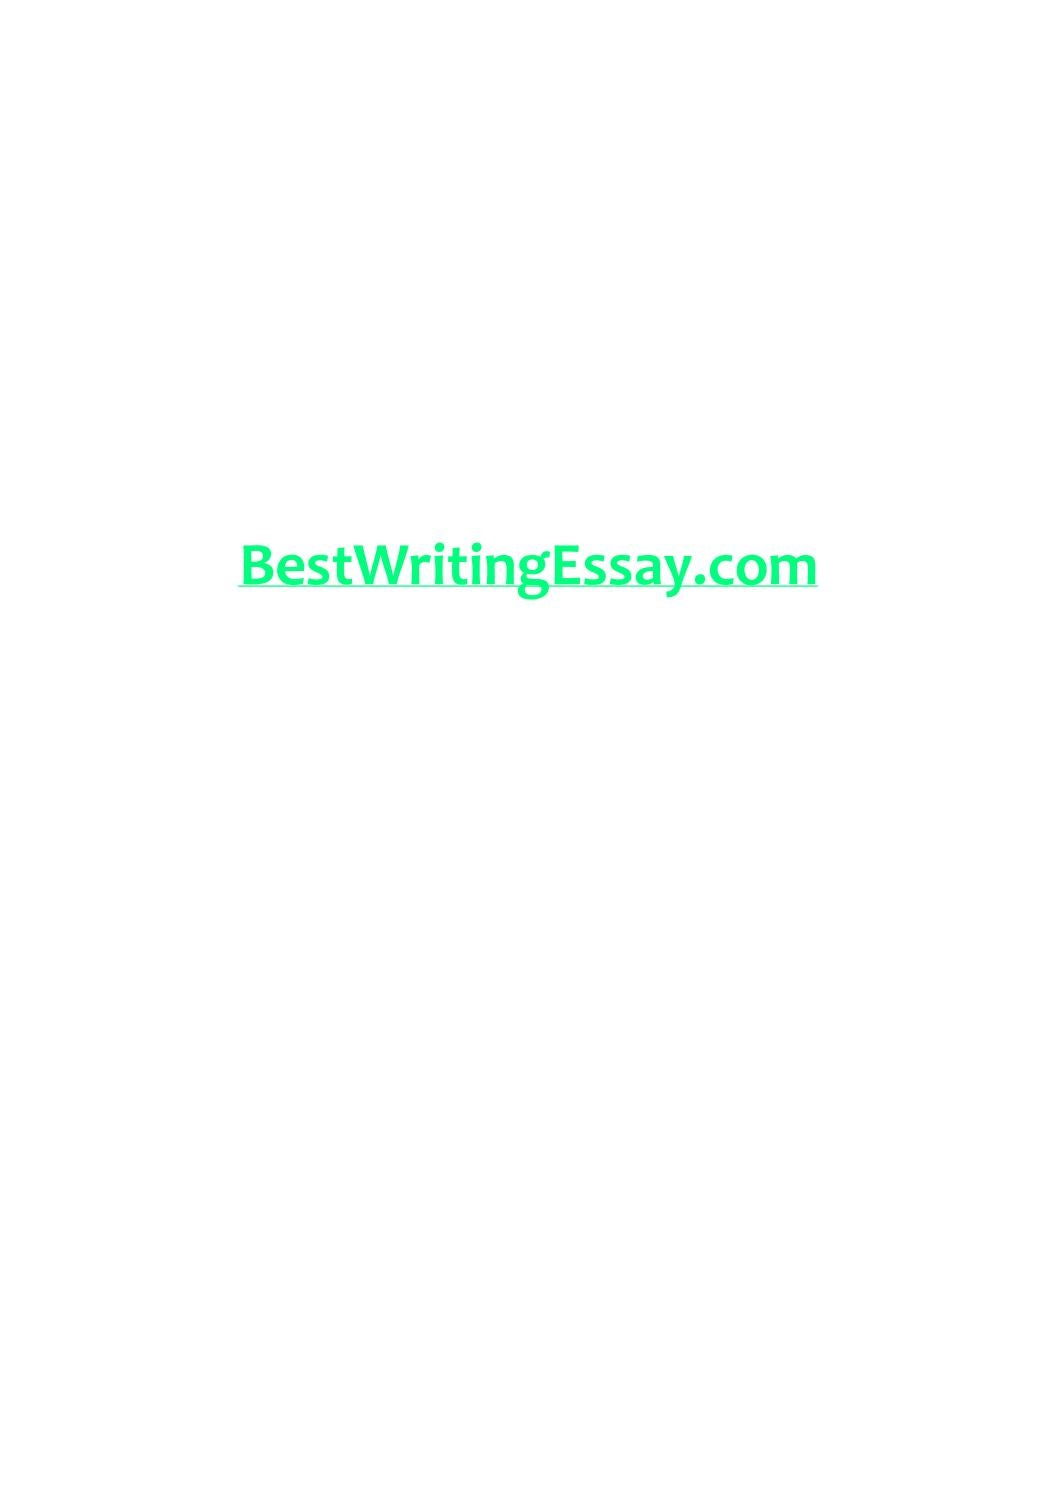 Persuasive Essay Thesis Statement  How To Write An Essay High School also Essay Writing On Newspaper Reflective Essay Examples For High School By Chrisvbppt   Issuu Essay Proposal Template